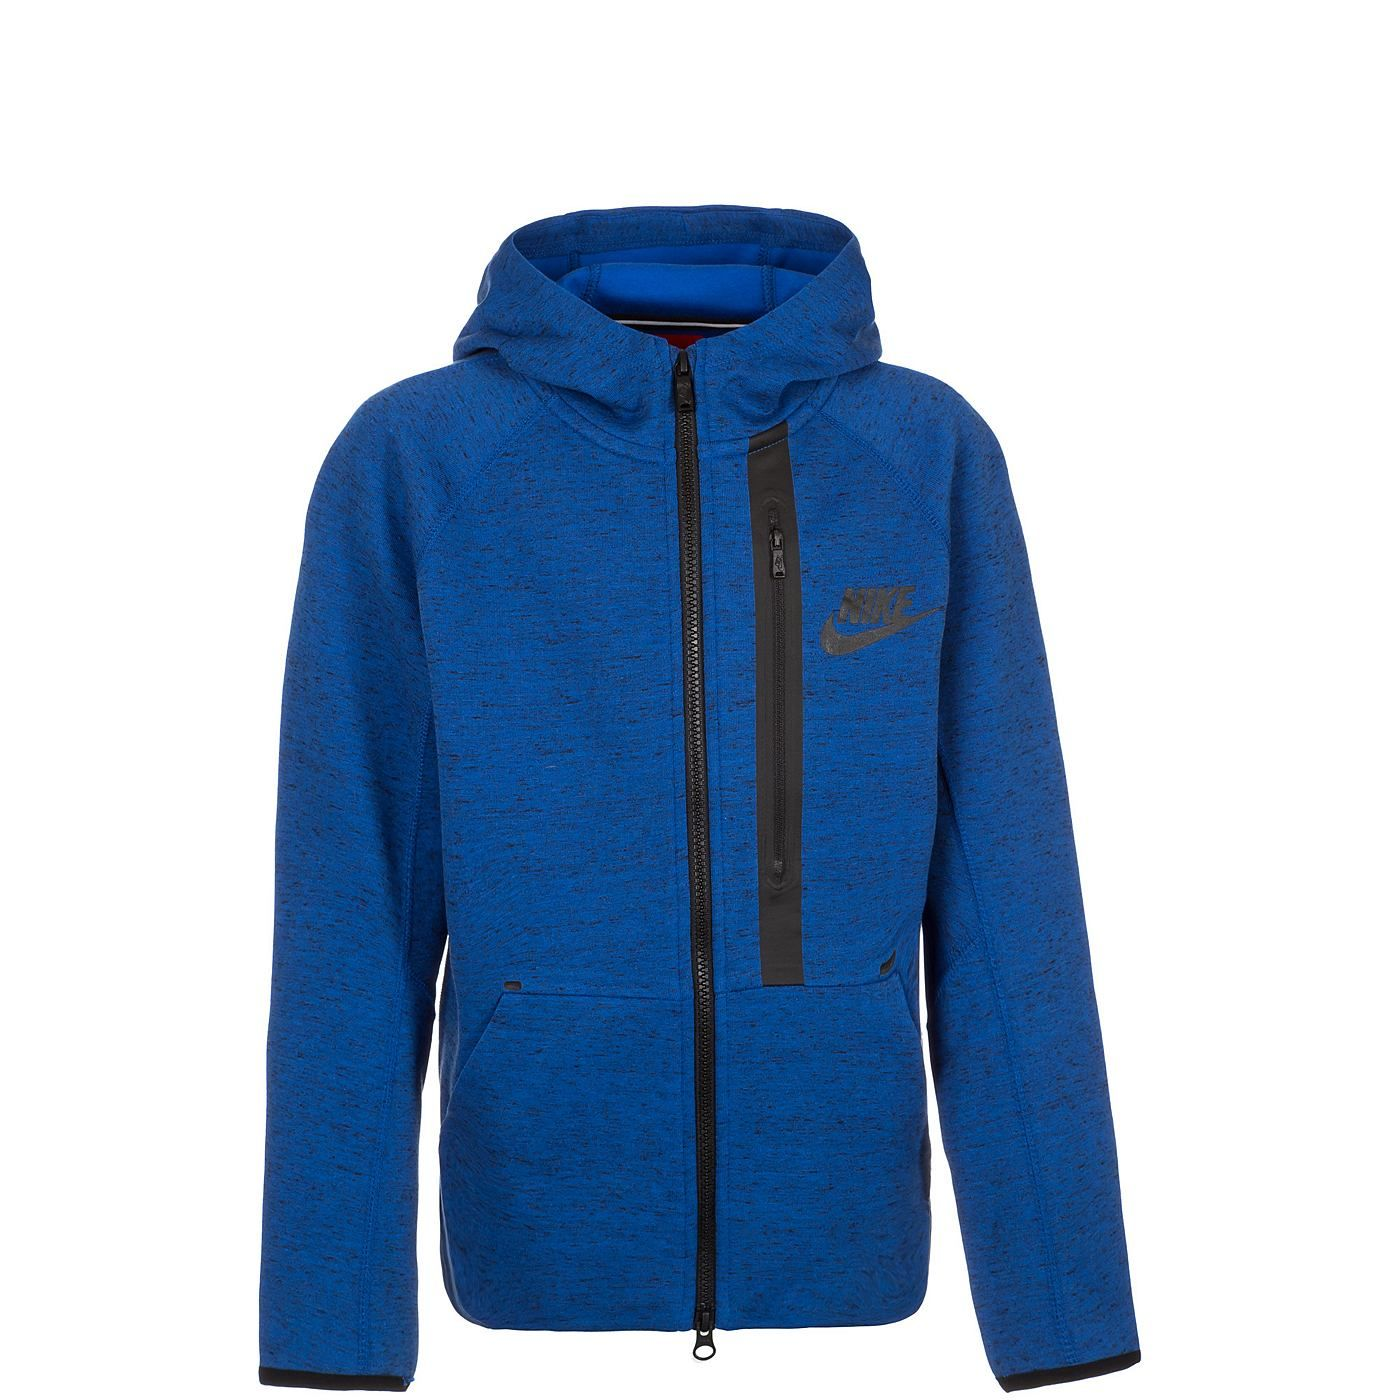 Nike Fleece Kinder Nike Tech Fleece Trainingshose Kinder Produktkatalog